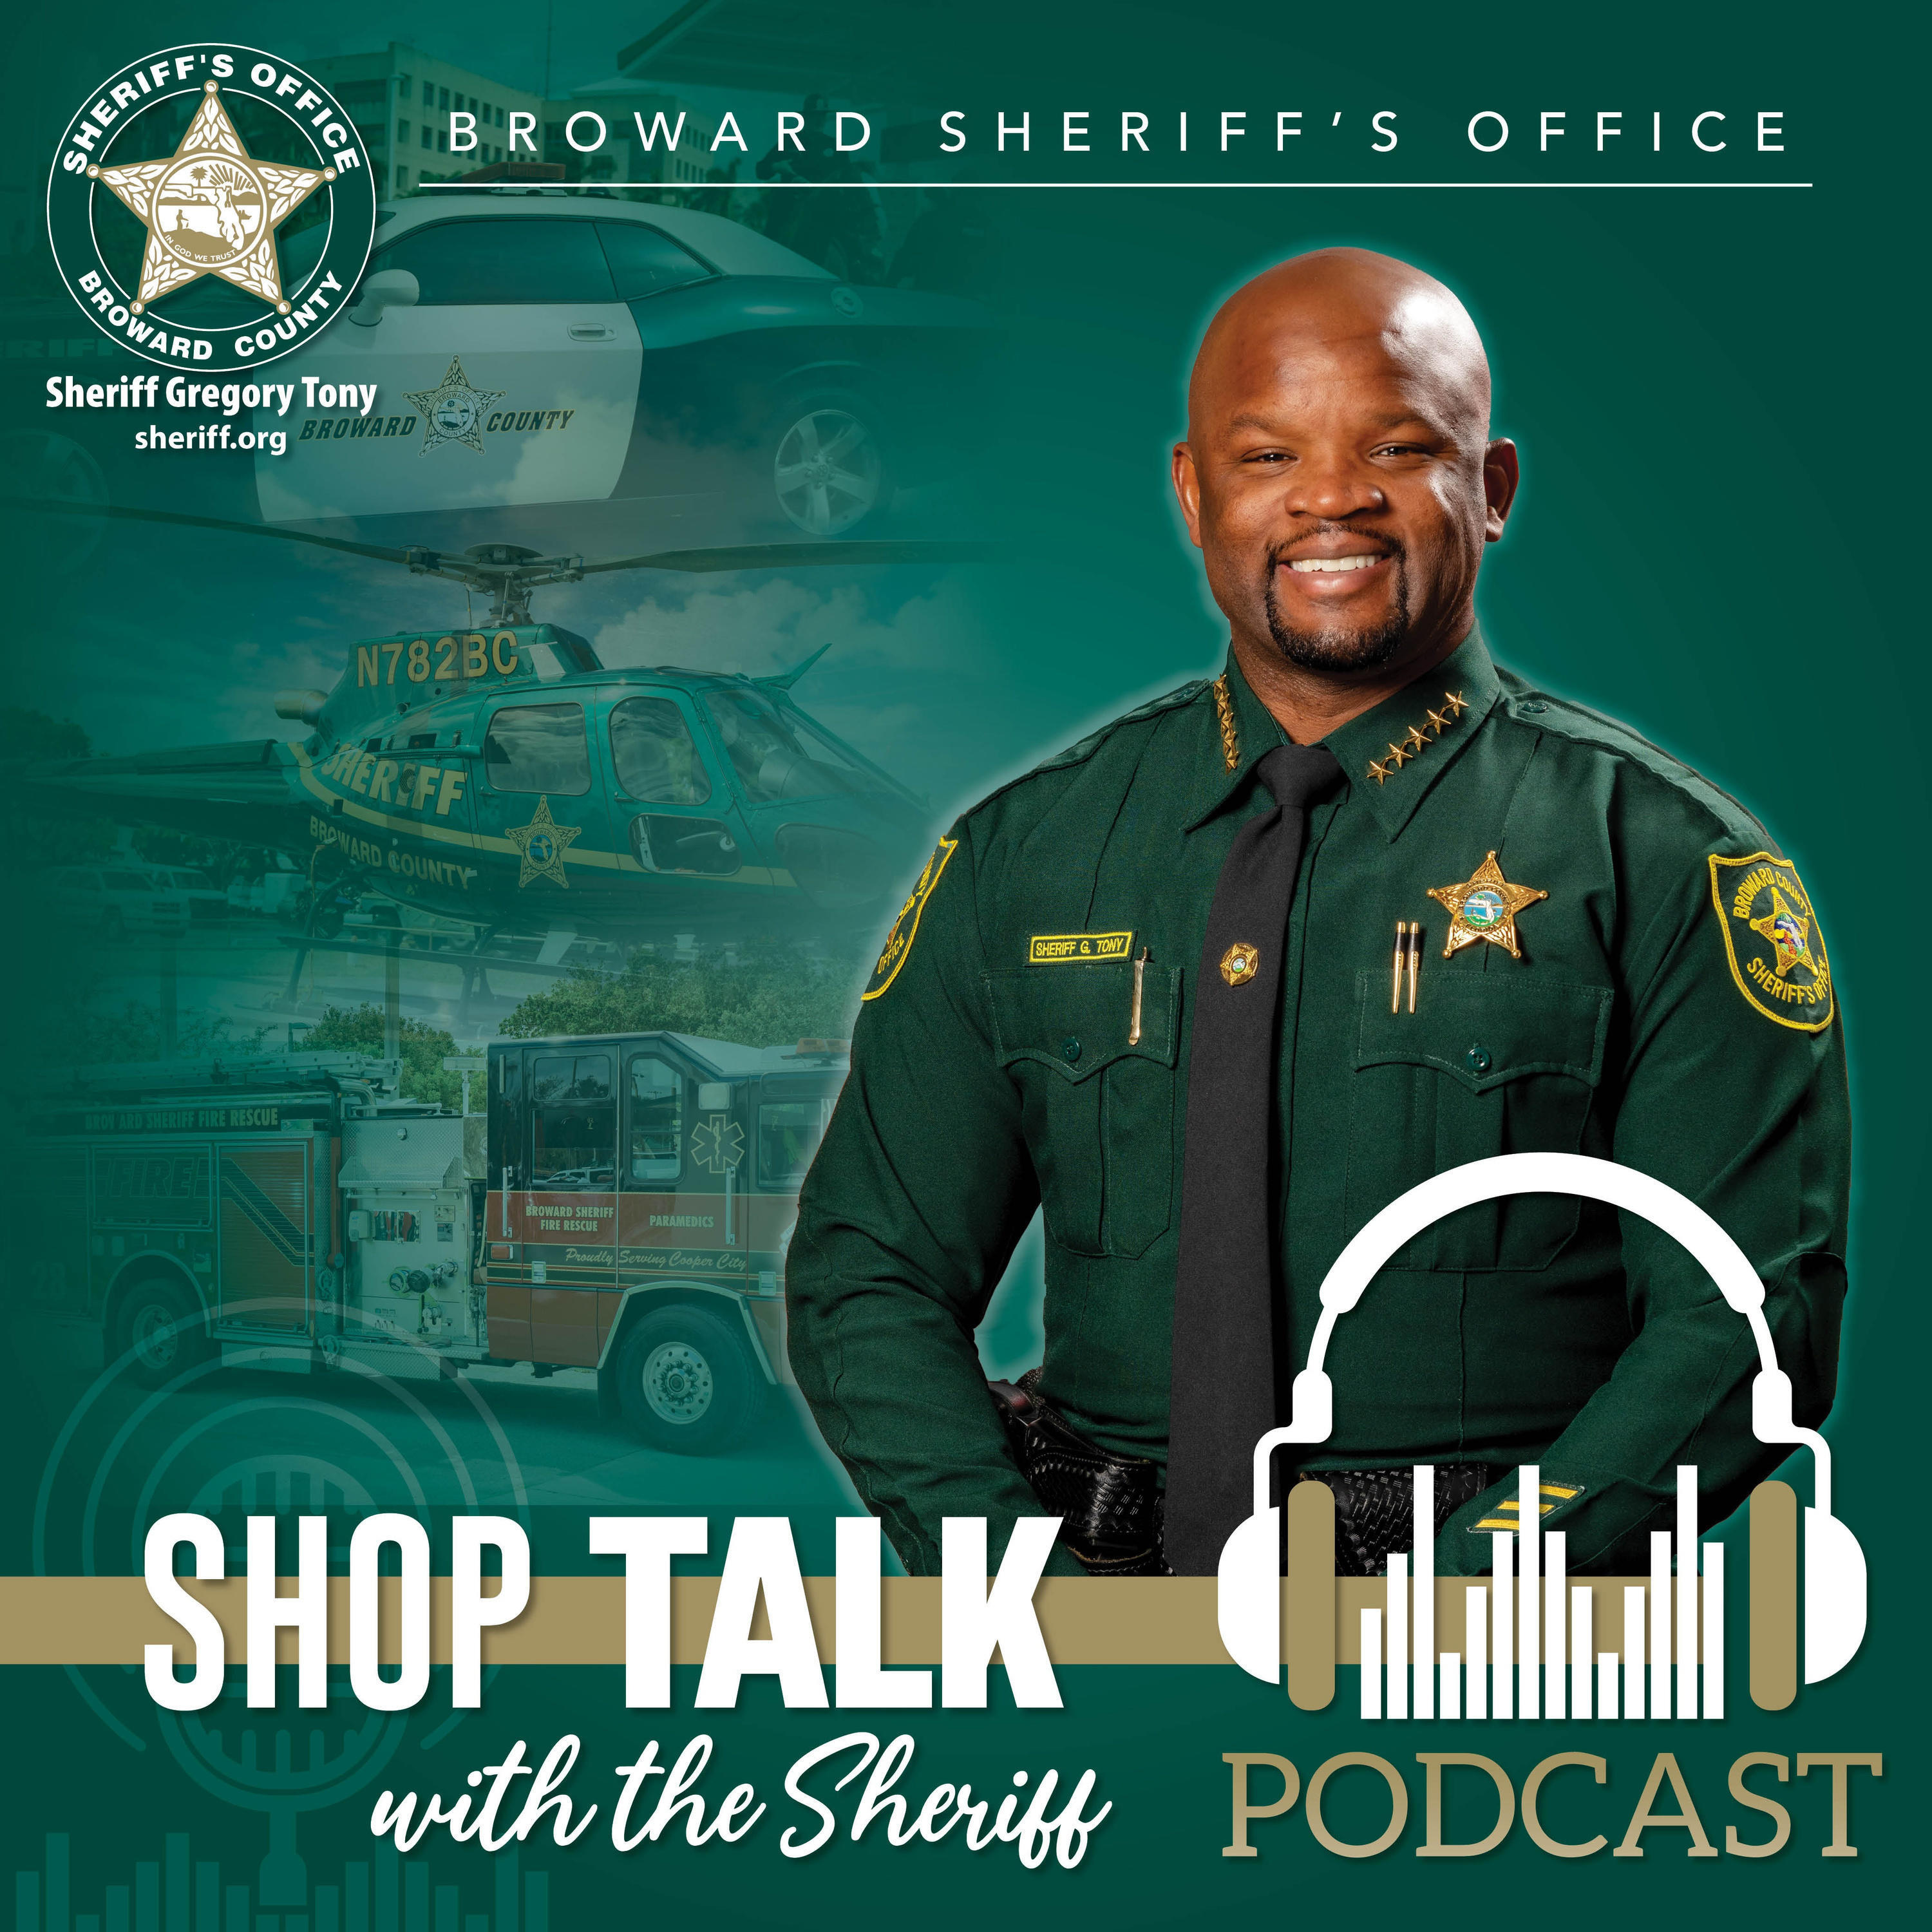 Shop Talk with the Sheriff